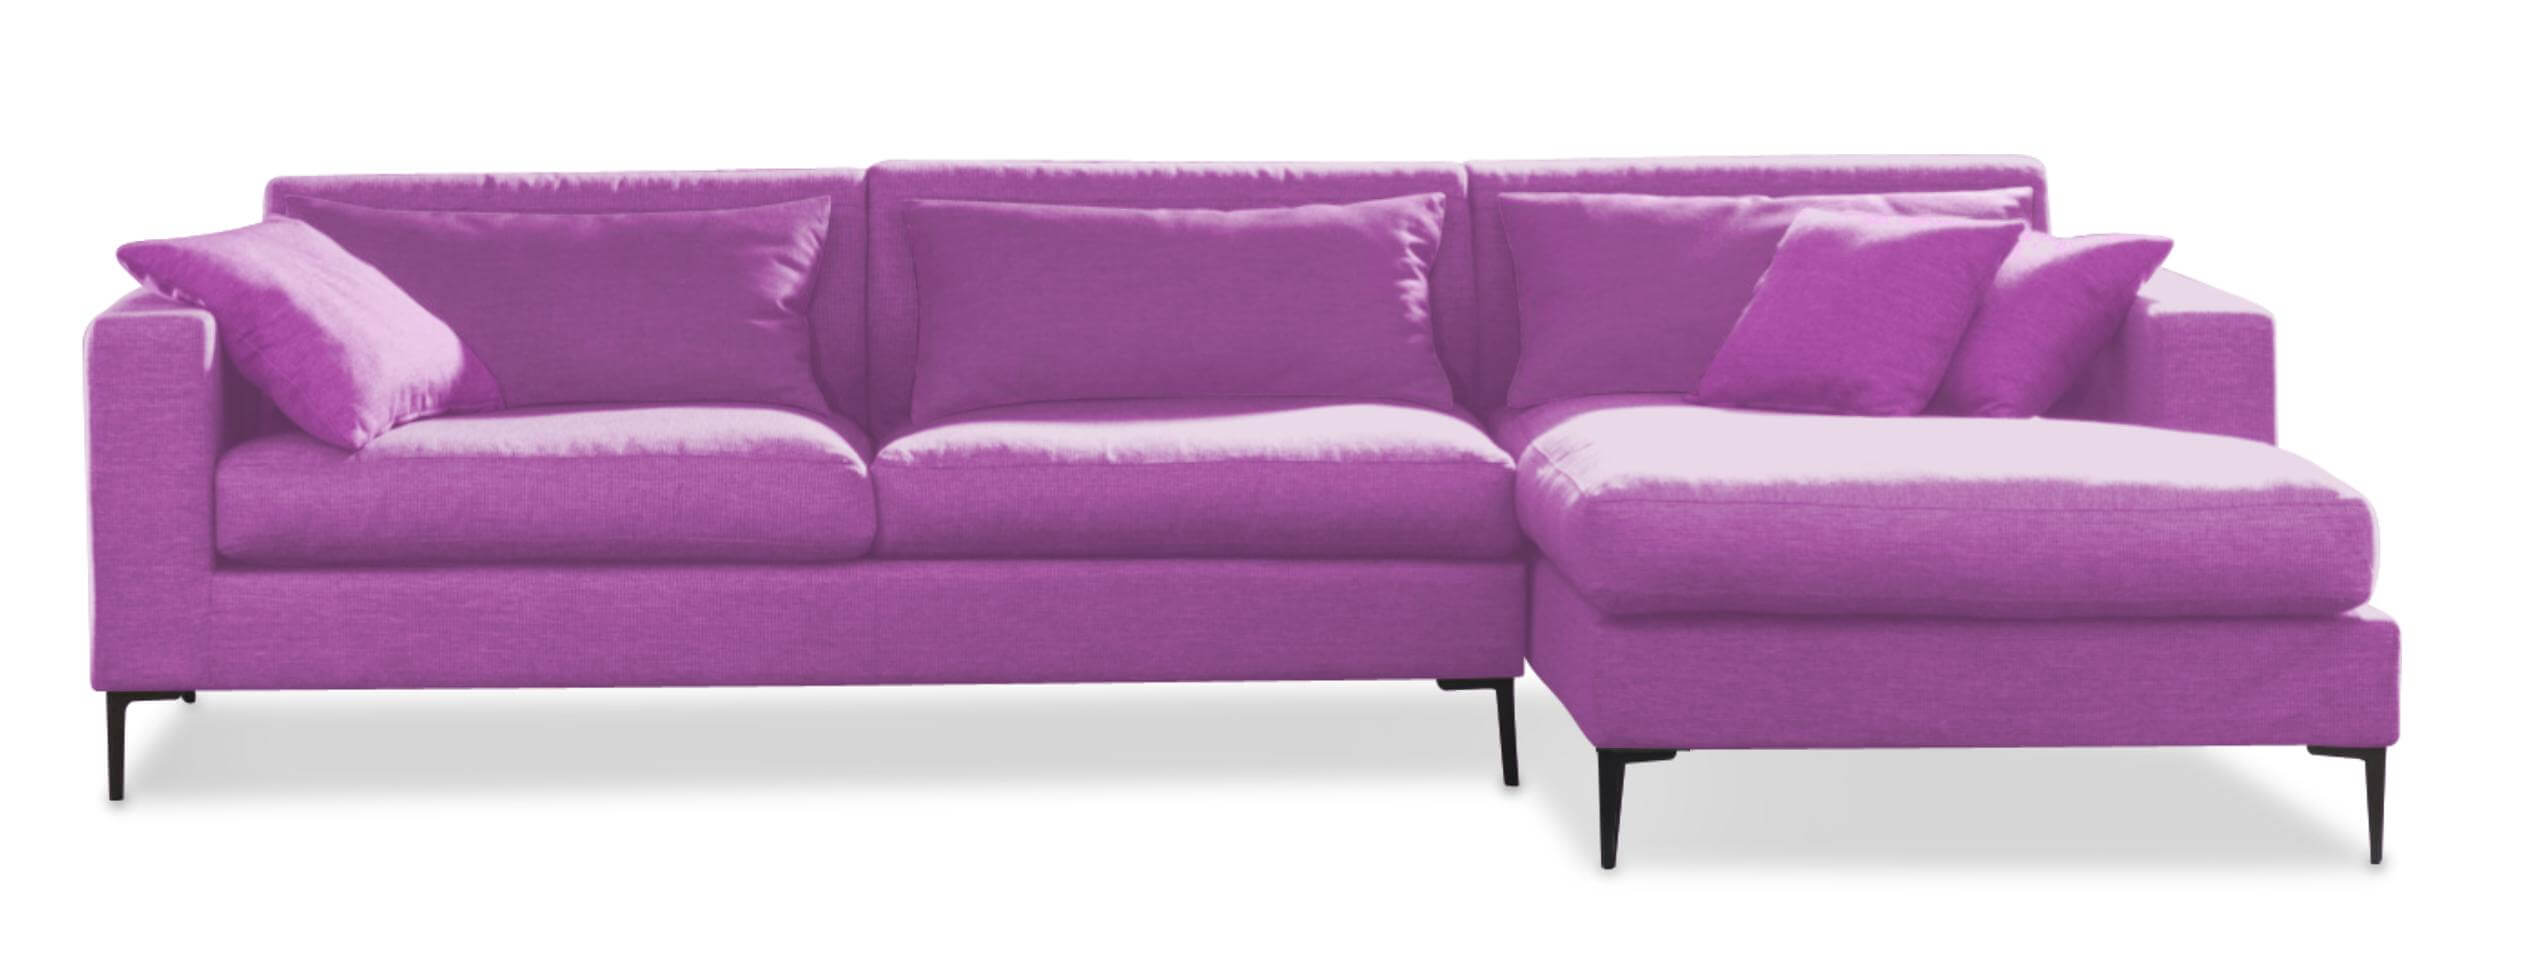 Full Size of Chesterfield Sofa Samt Lila Lilah Raymour And Flanigan Lilac Covers Sleeper Throws Living Room Wohnzimmer Lilafarbige Und Pinke Sofas The Lounge Company Sofa Sofa Lila